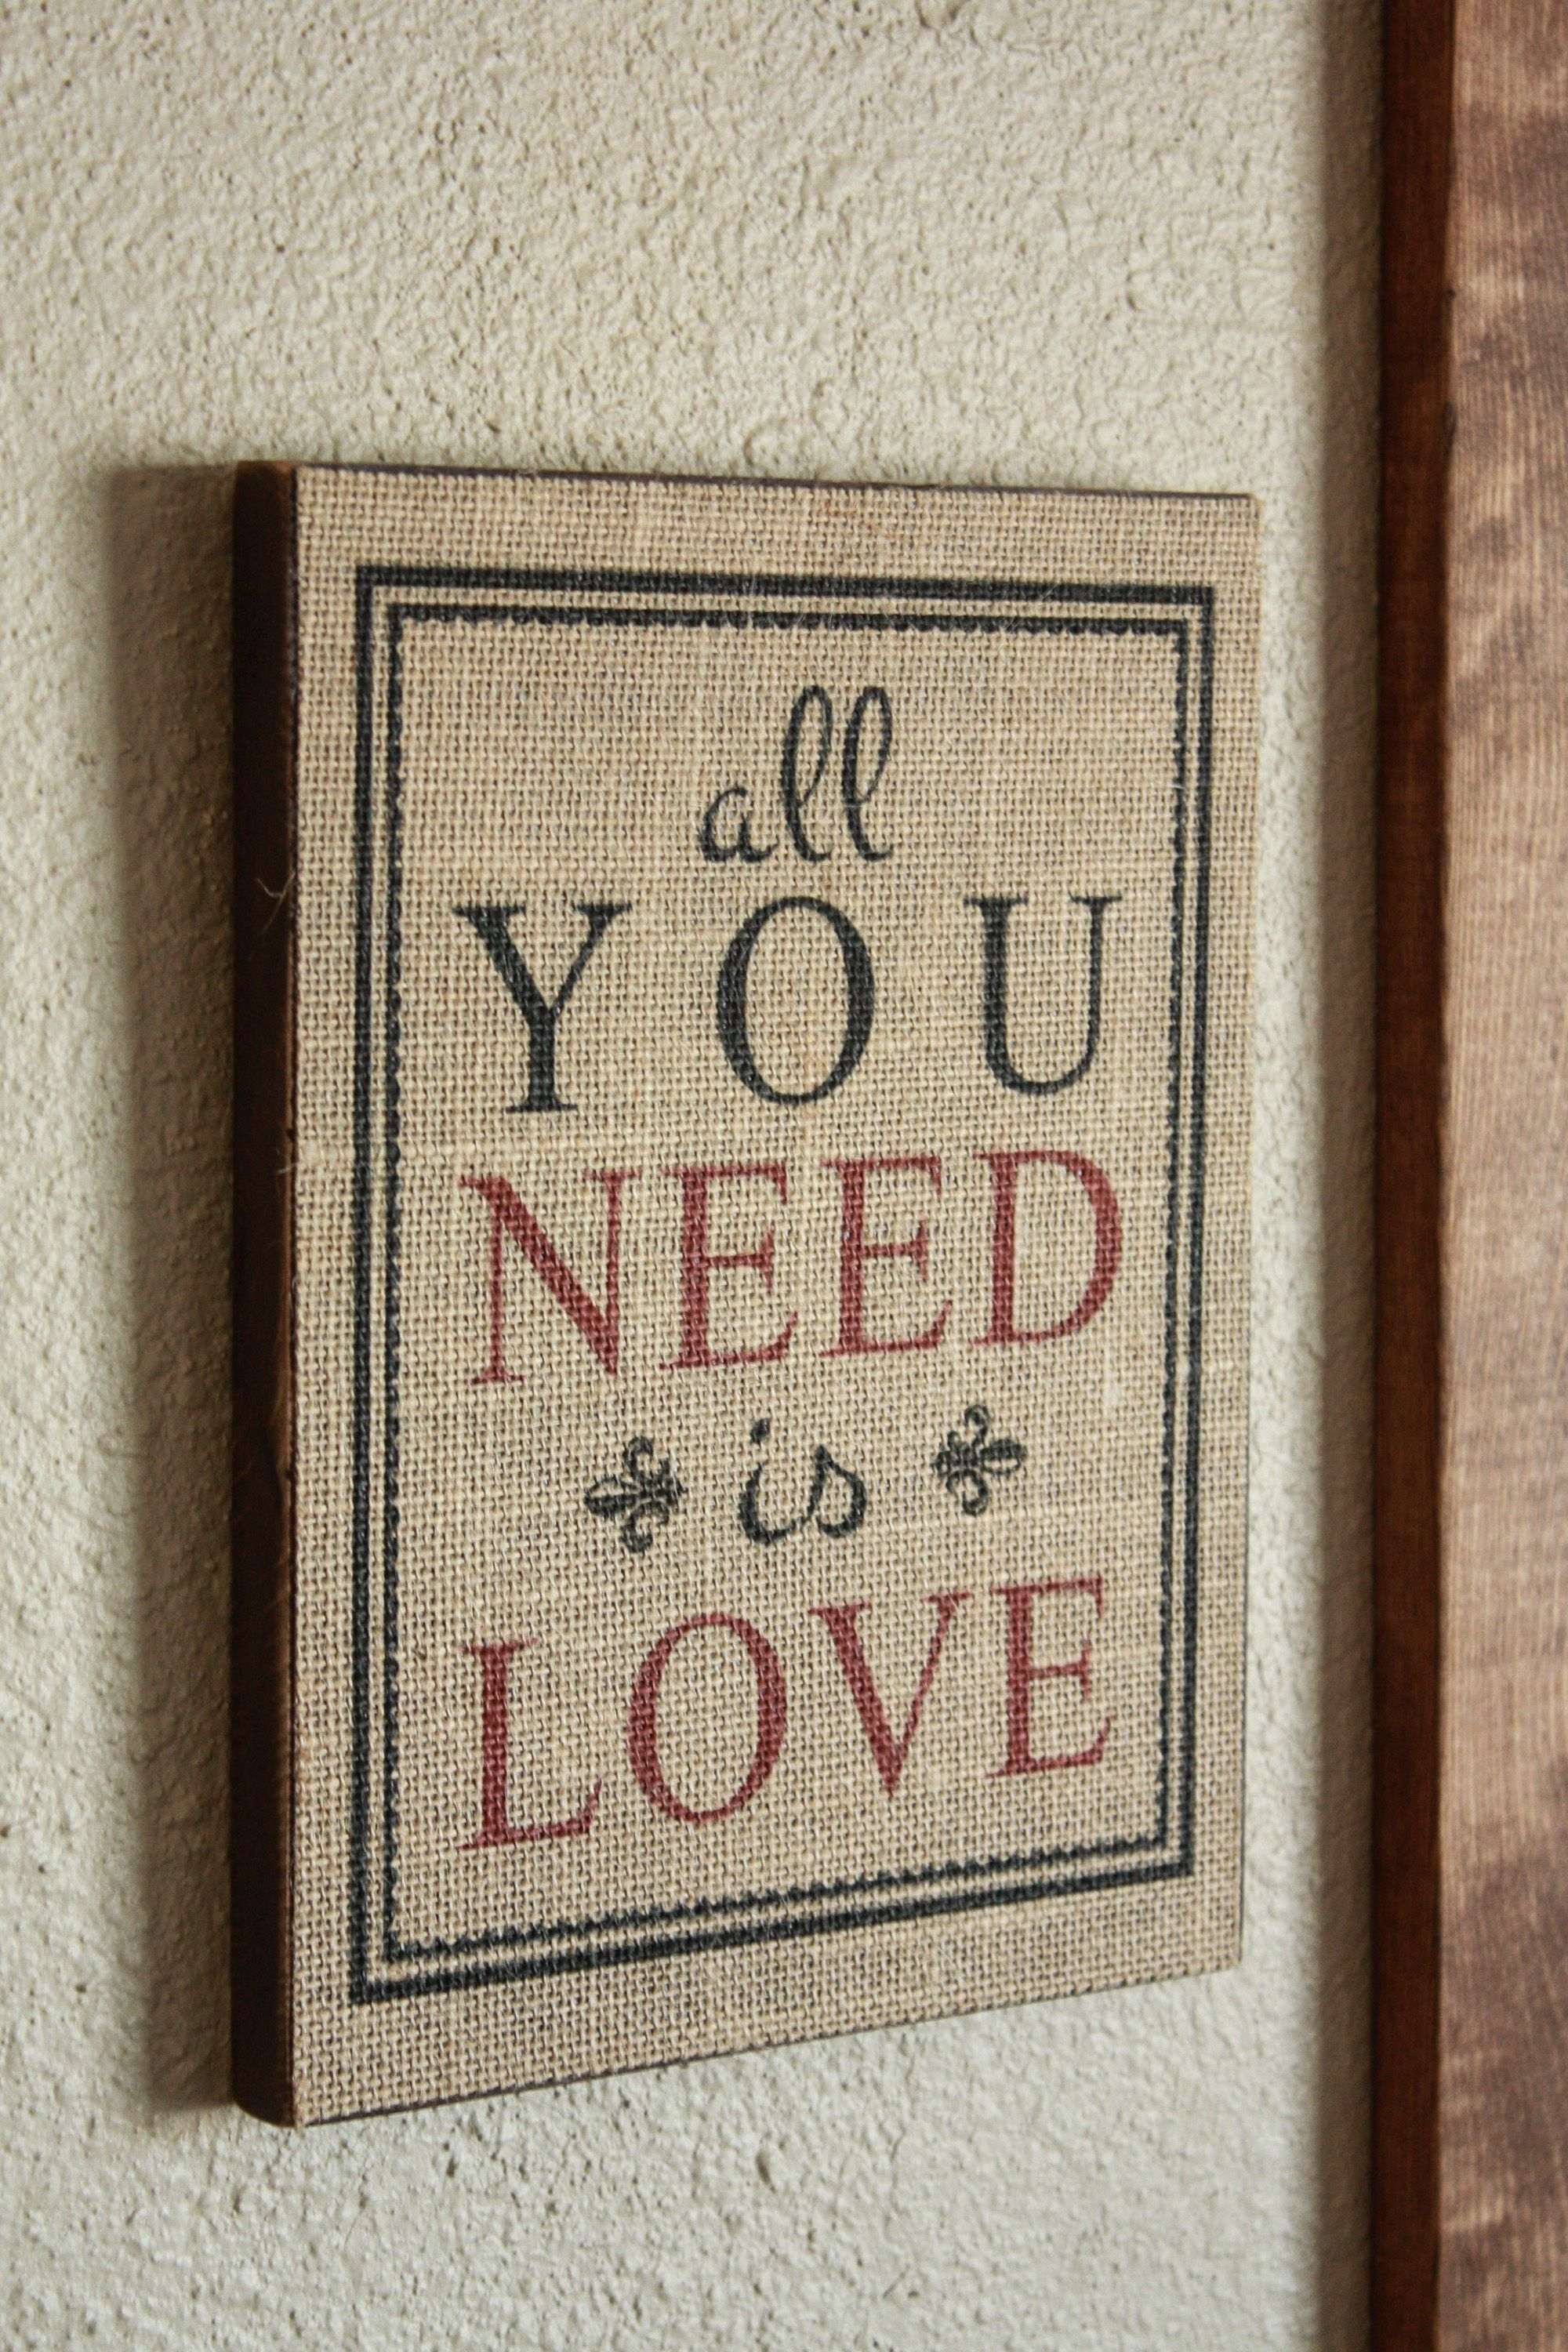 Pottery Barn Inspired Burlap Print for Valentine's Day! FREE Printable Included!